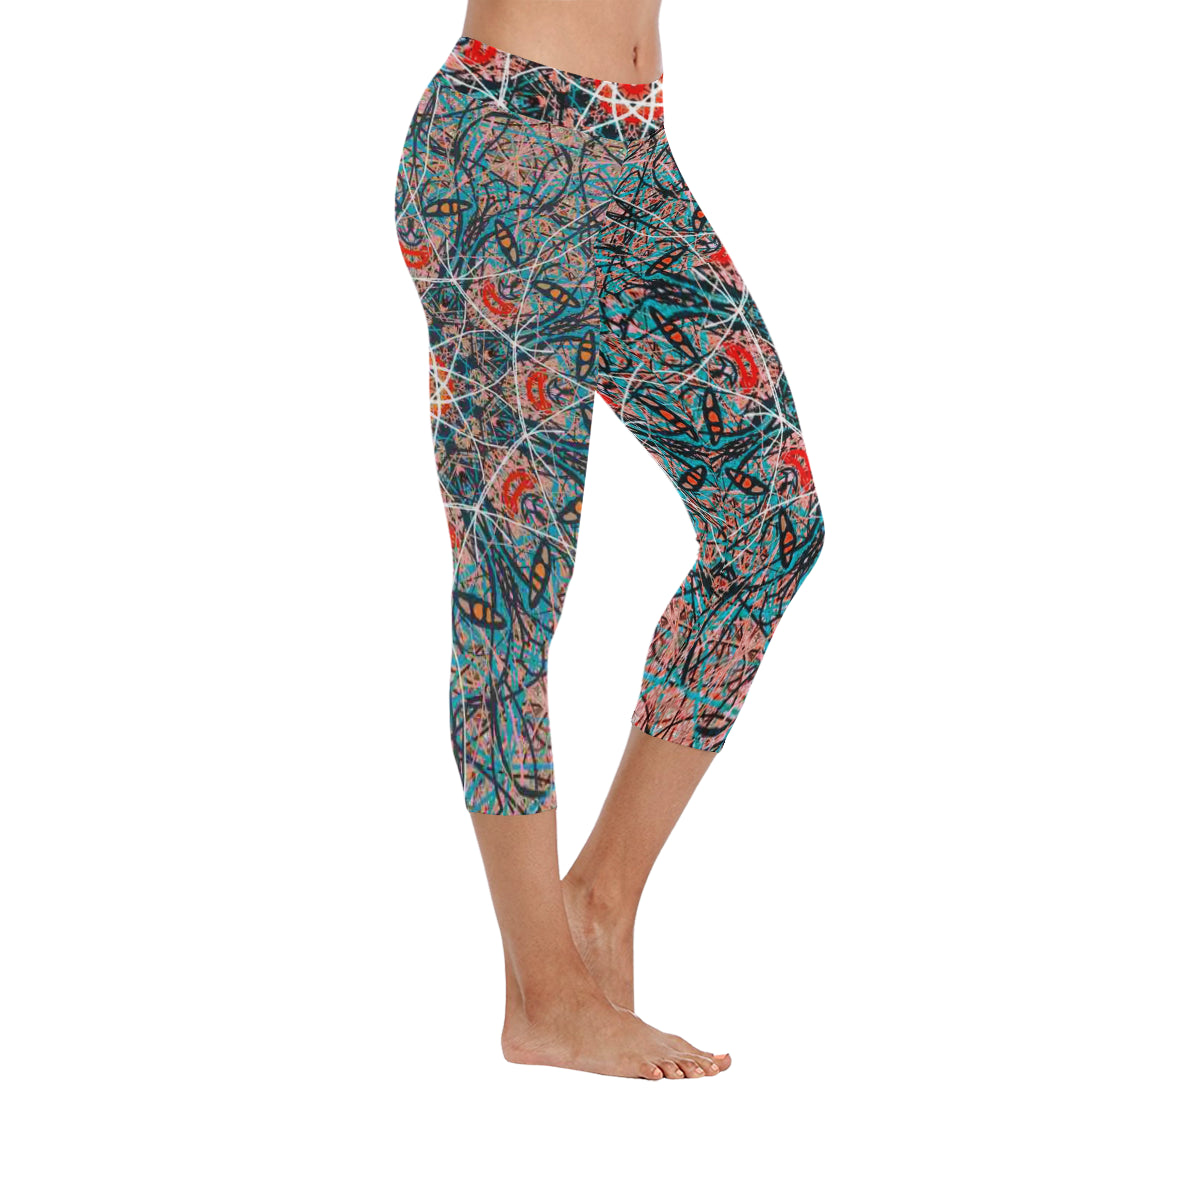 Thleudron Agave New Low Rise Capri Leggings (Flatlock Stitch) (Model L09) - Thleudron